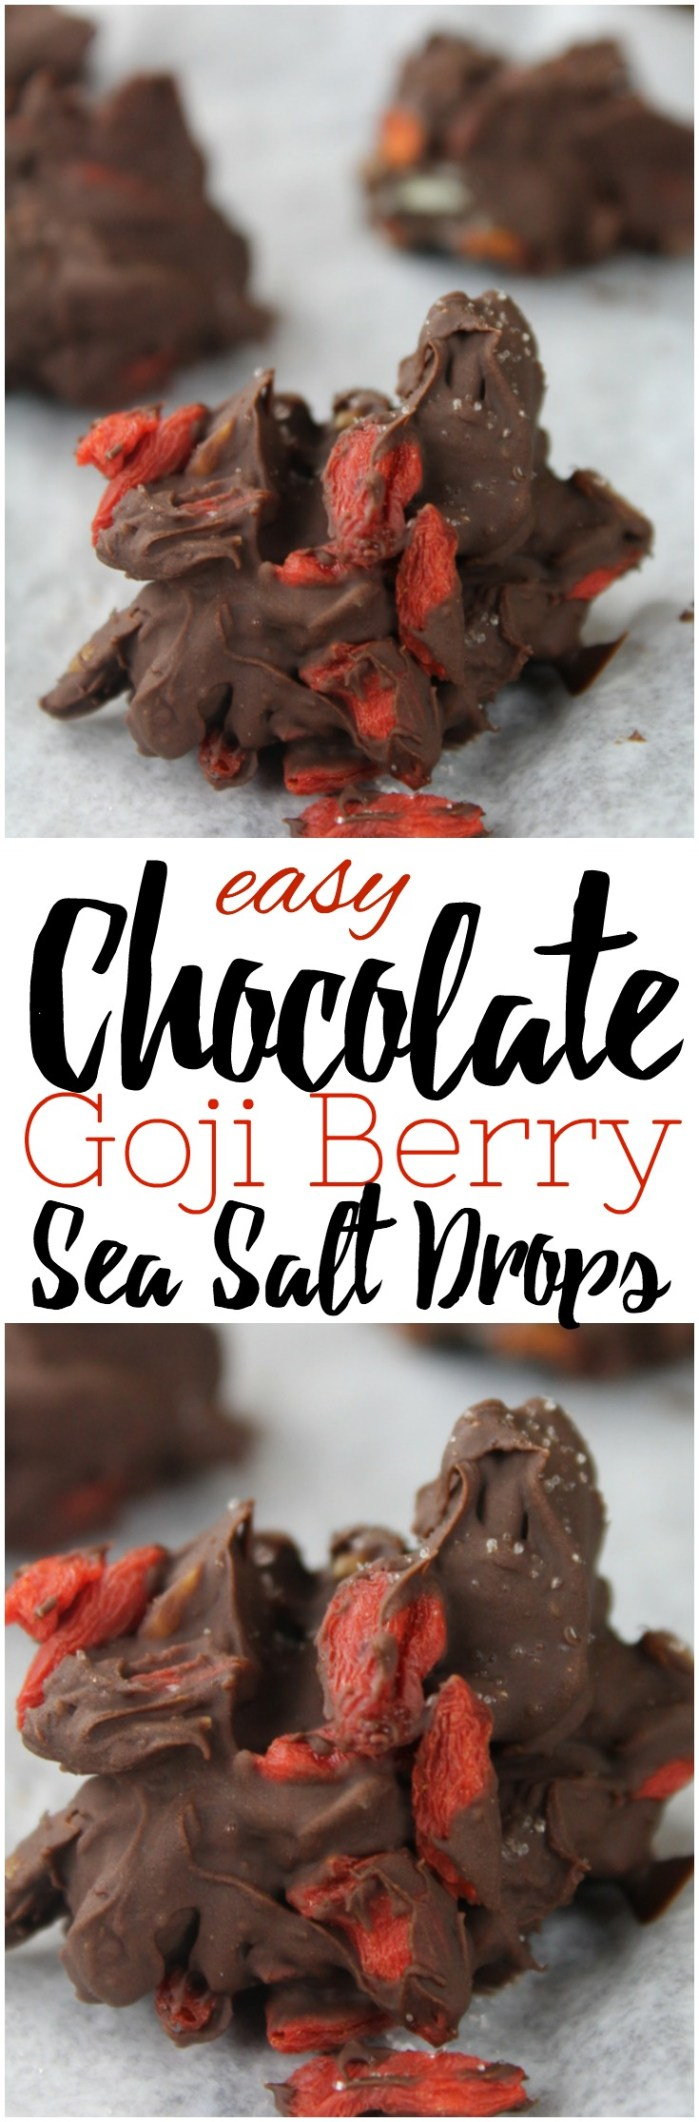 These easy, no bake Chocolate Goji Berry Sea Salt Drops are a decadent chocolate treat with just four simple ingredients that take just minutes to make!  #gojiberry #chocolate #holidays #nobake